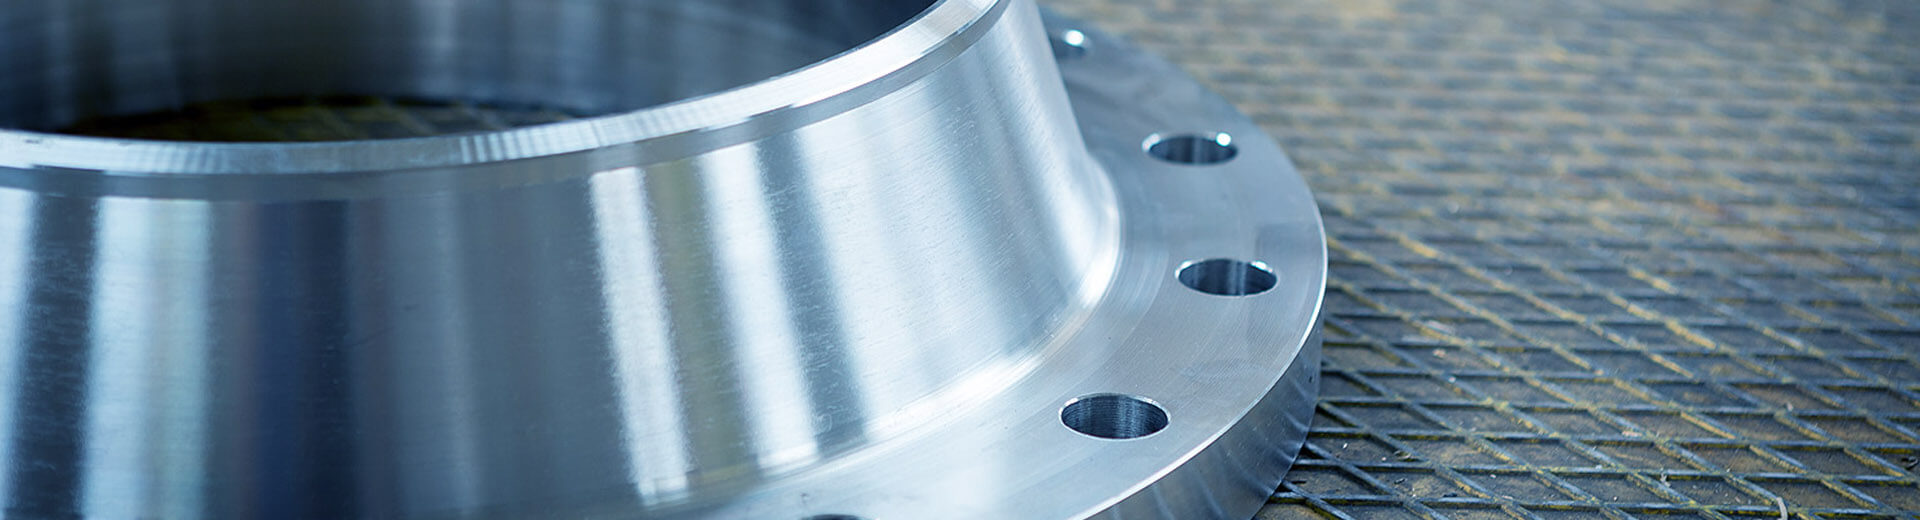 Steeltrade-flange-in-acciaio3